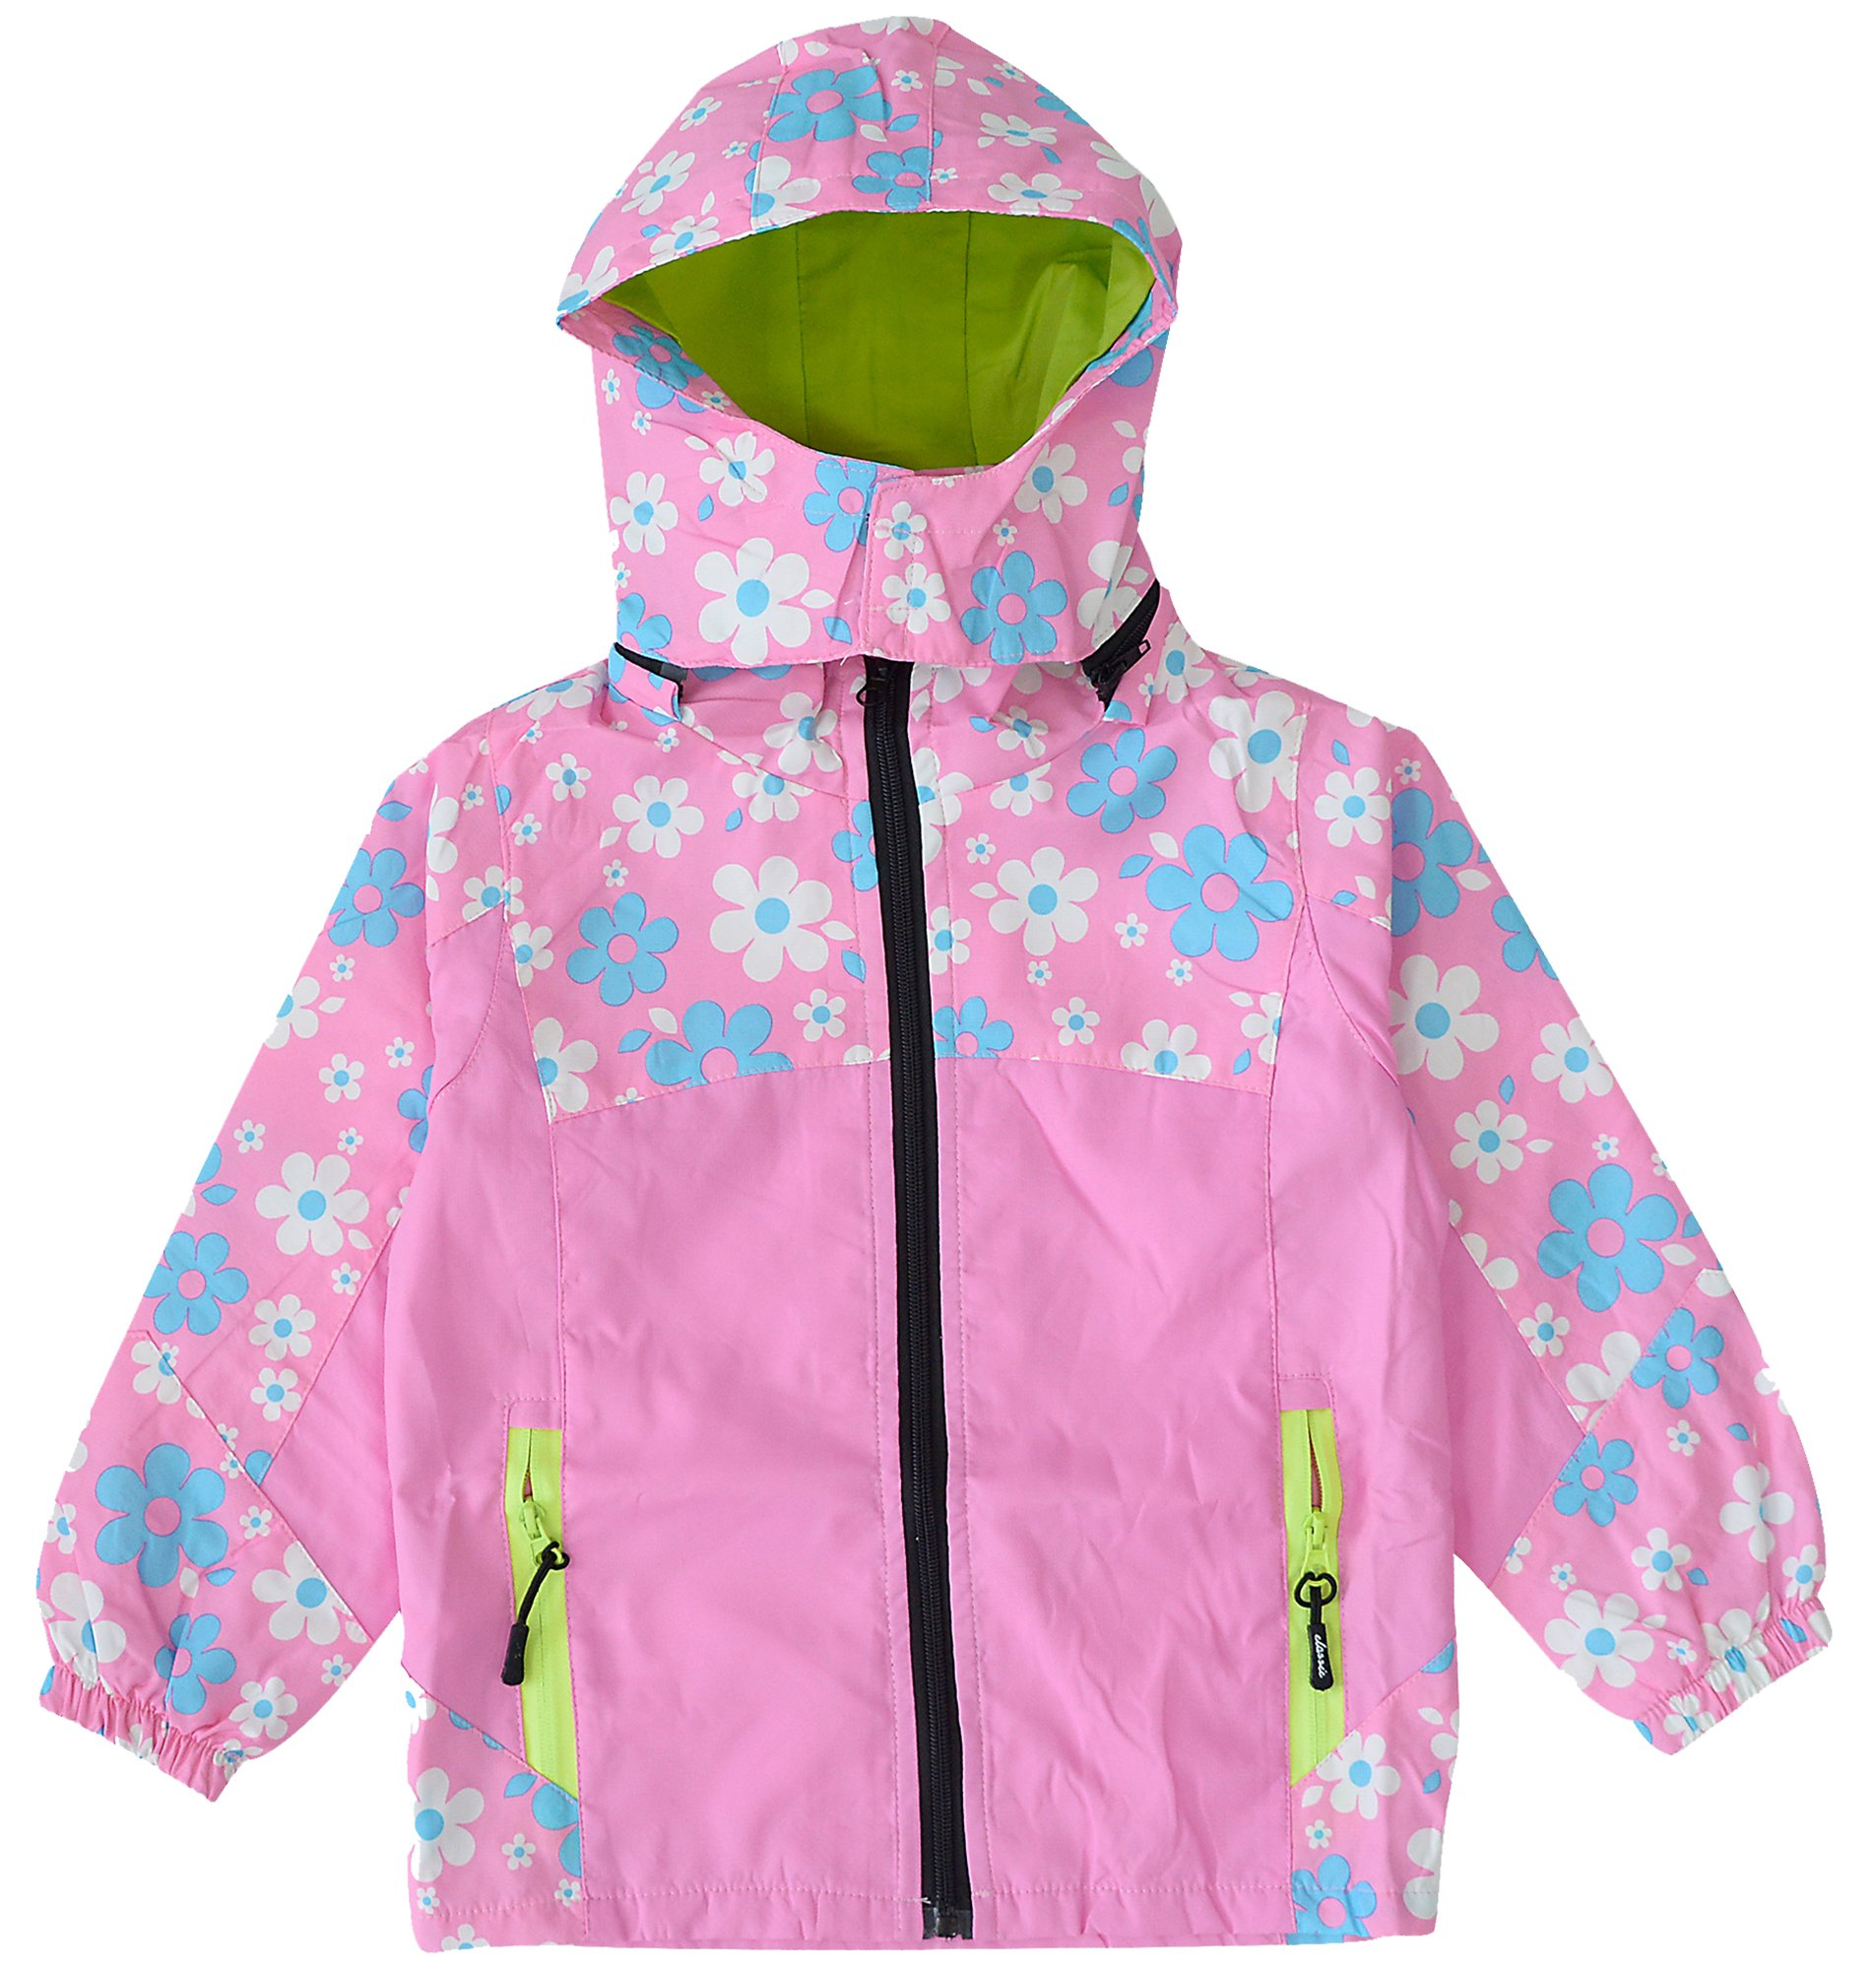 KISBINI Big Girls Windproof Zipper Jacket Hooded Windbreaker Raincoat Pink 10T